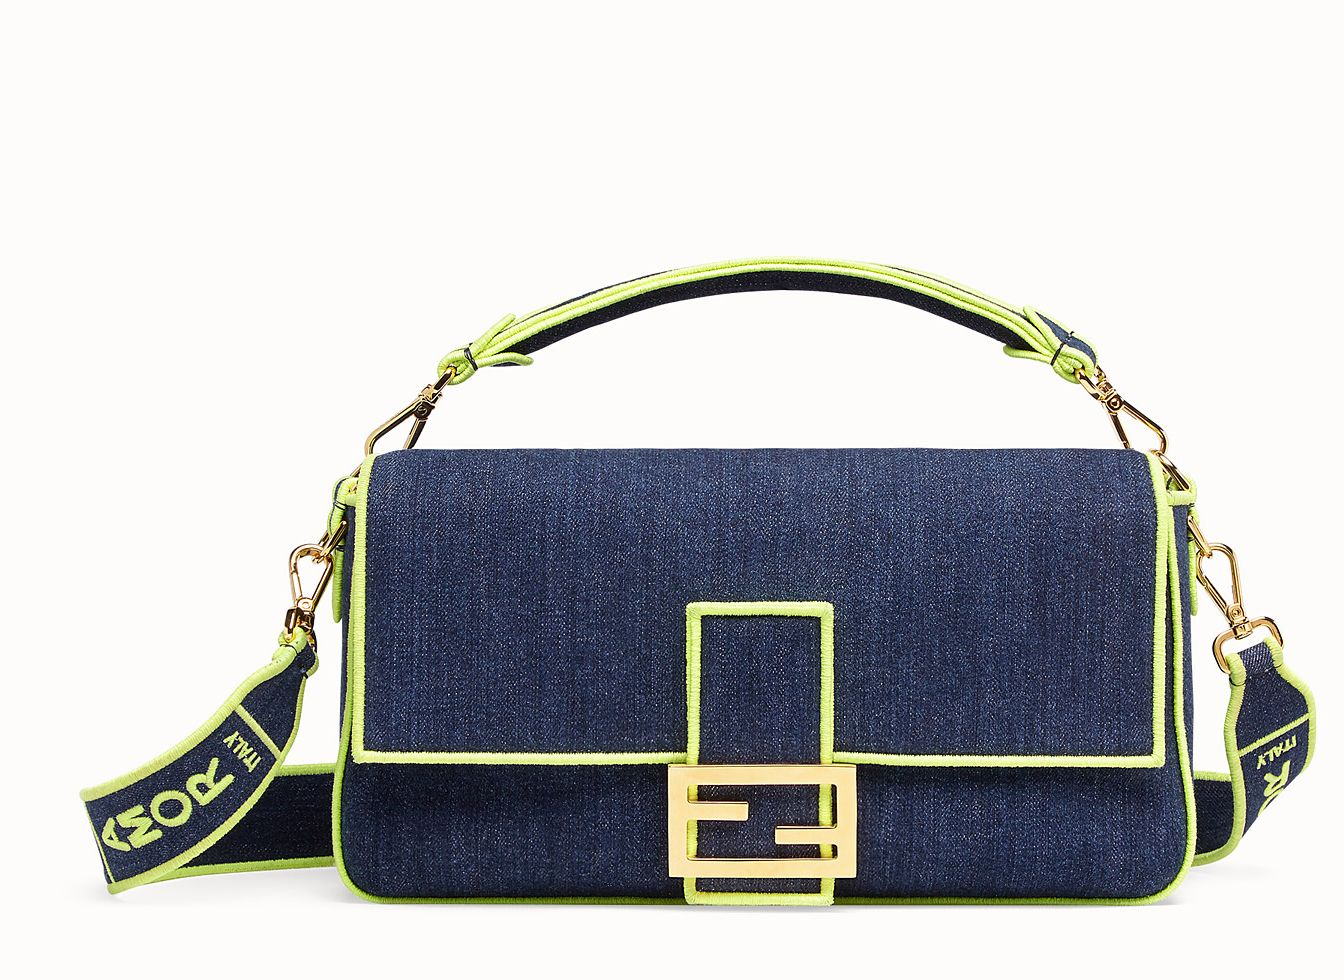 fendi-baguette-large-blue-denim-fluorescent-yellow-edges